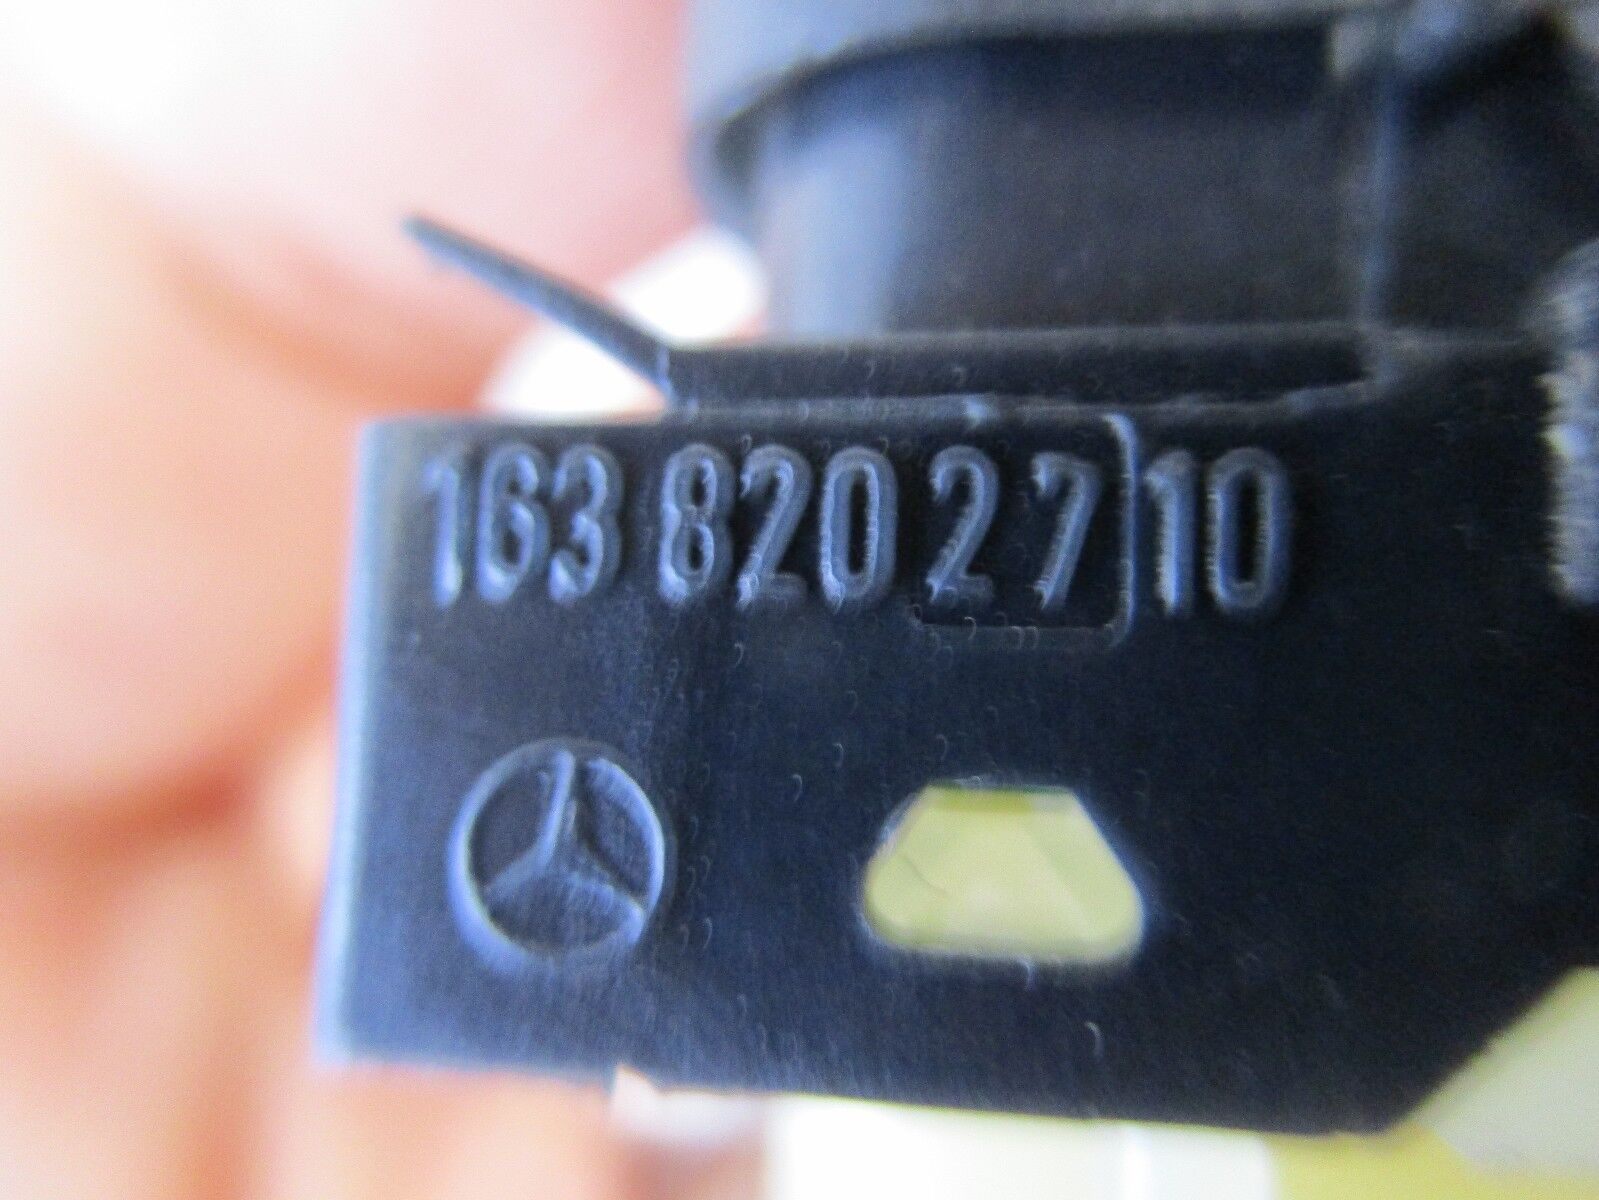 Used Mercedes Benz Accessories For Sale Page 19 Slk280 Fuel Filter 2001 Ml320 Oem Center Dash Electronic Stability Program Esp Switch